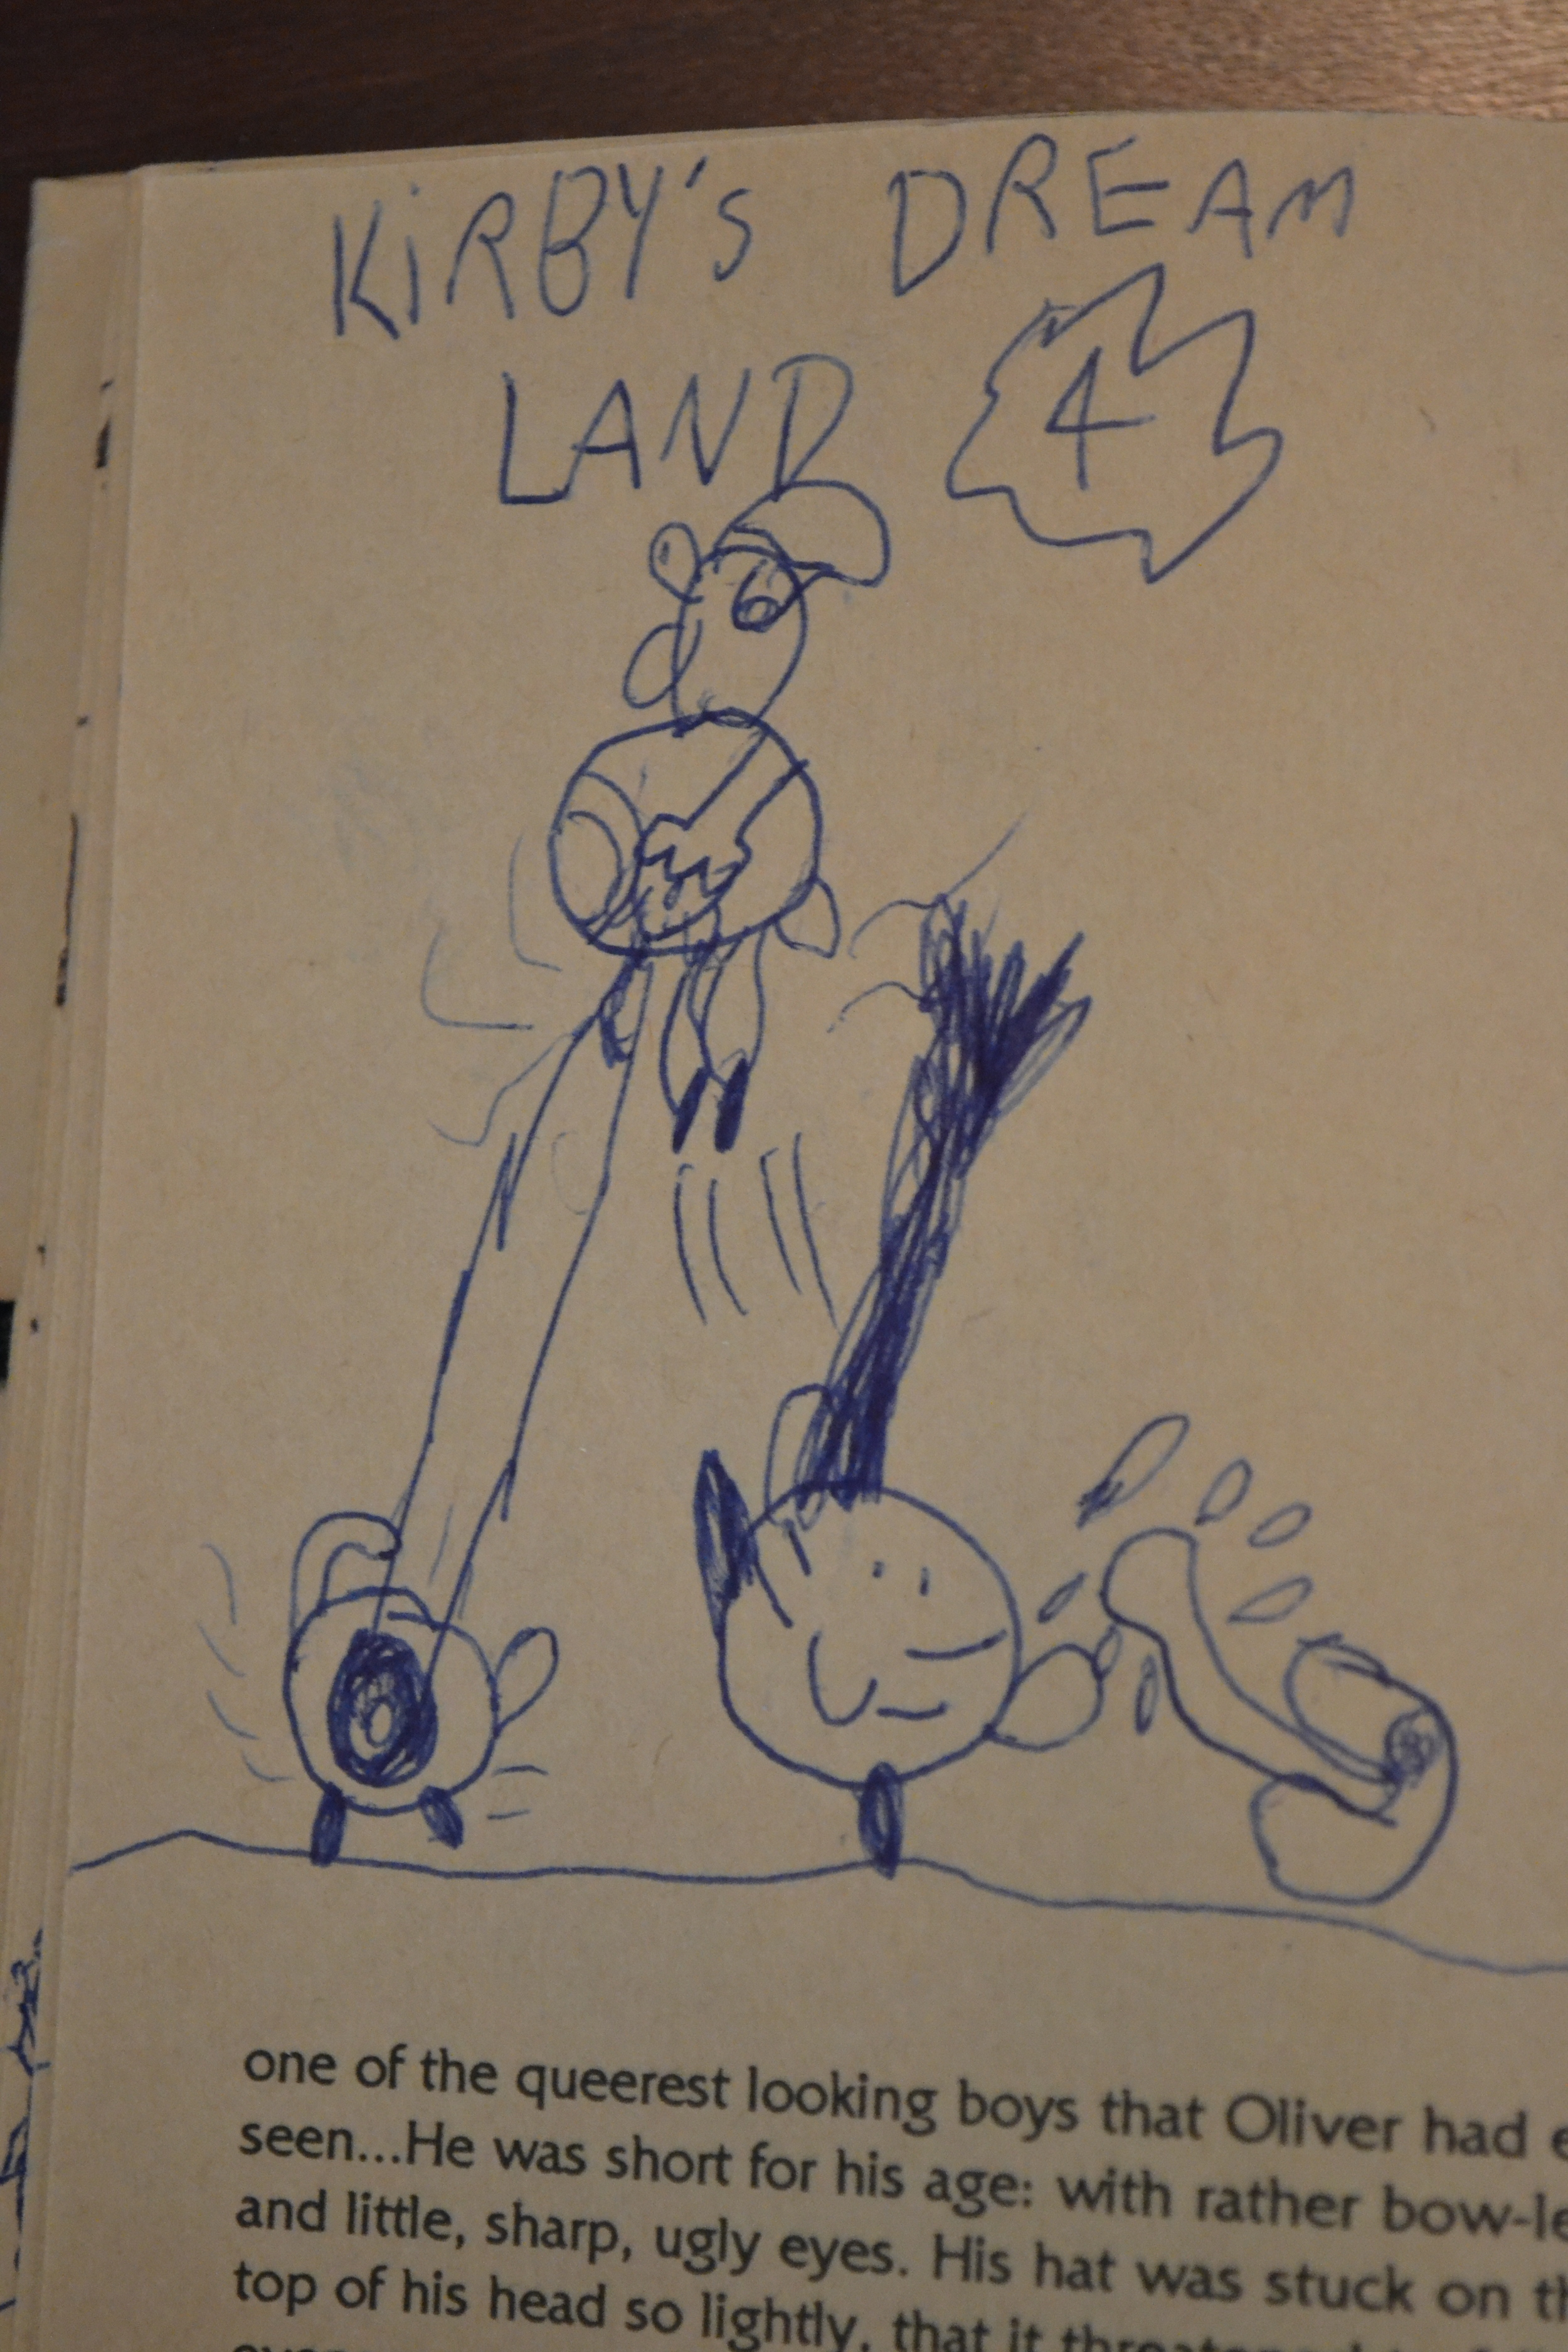 The 3rd-most overtly homoerotic/sexual thing I drew as a 3rd grader.